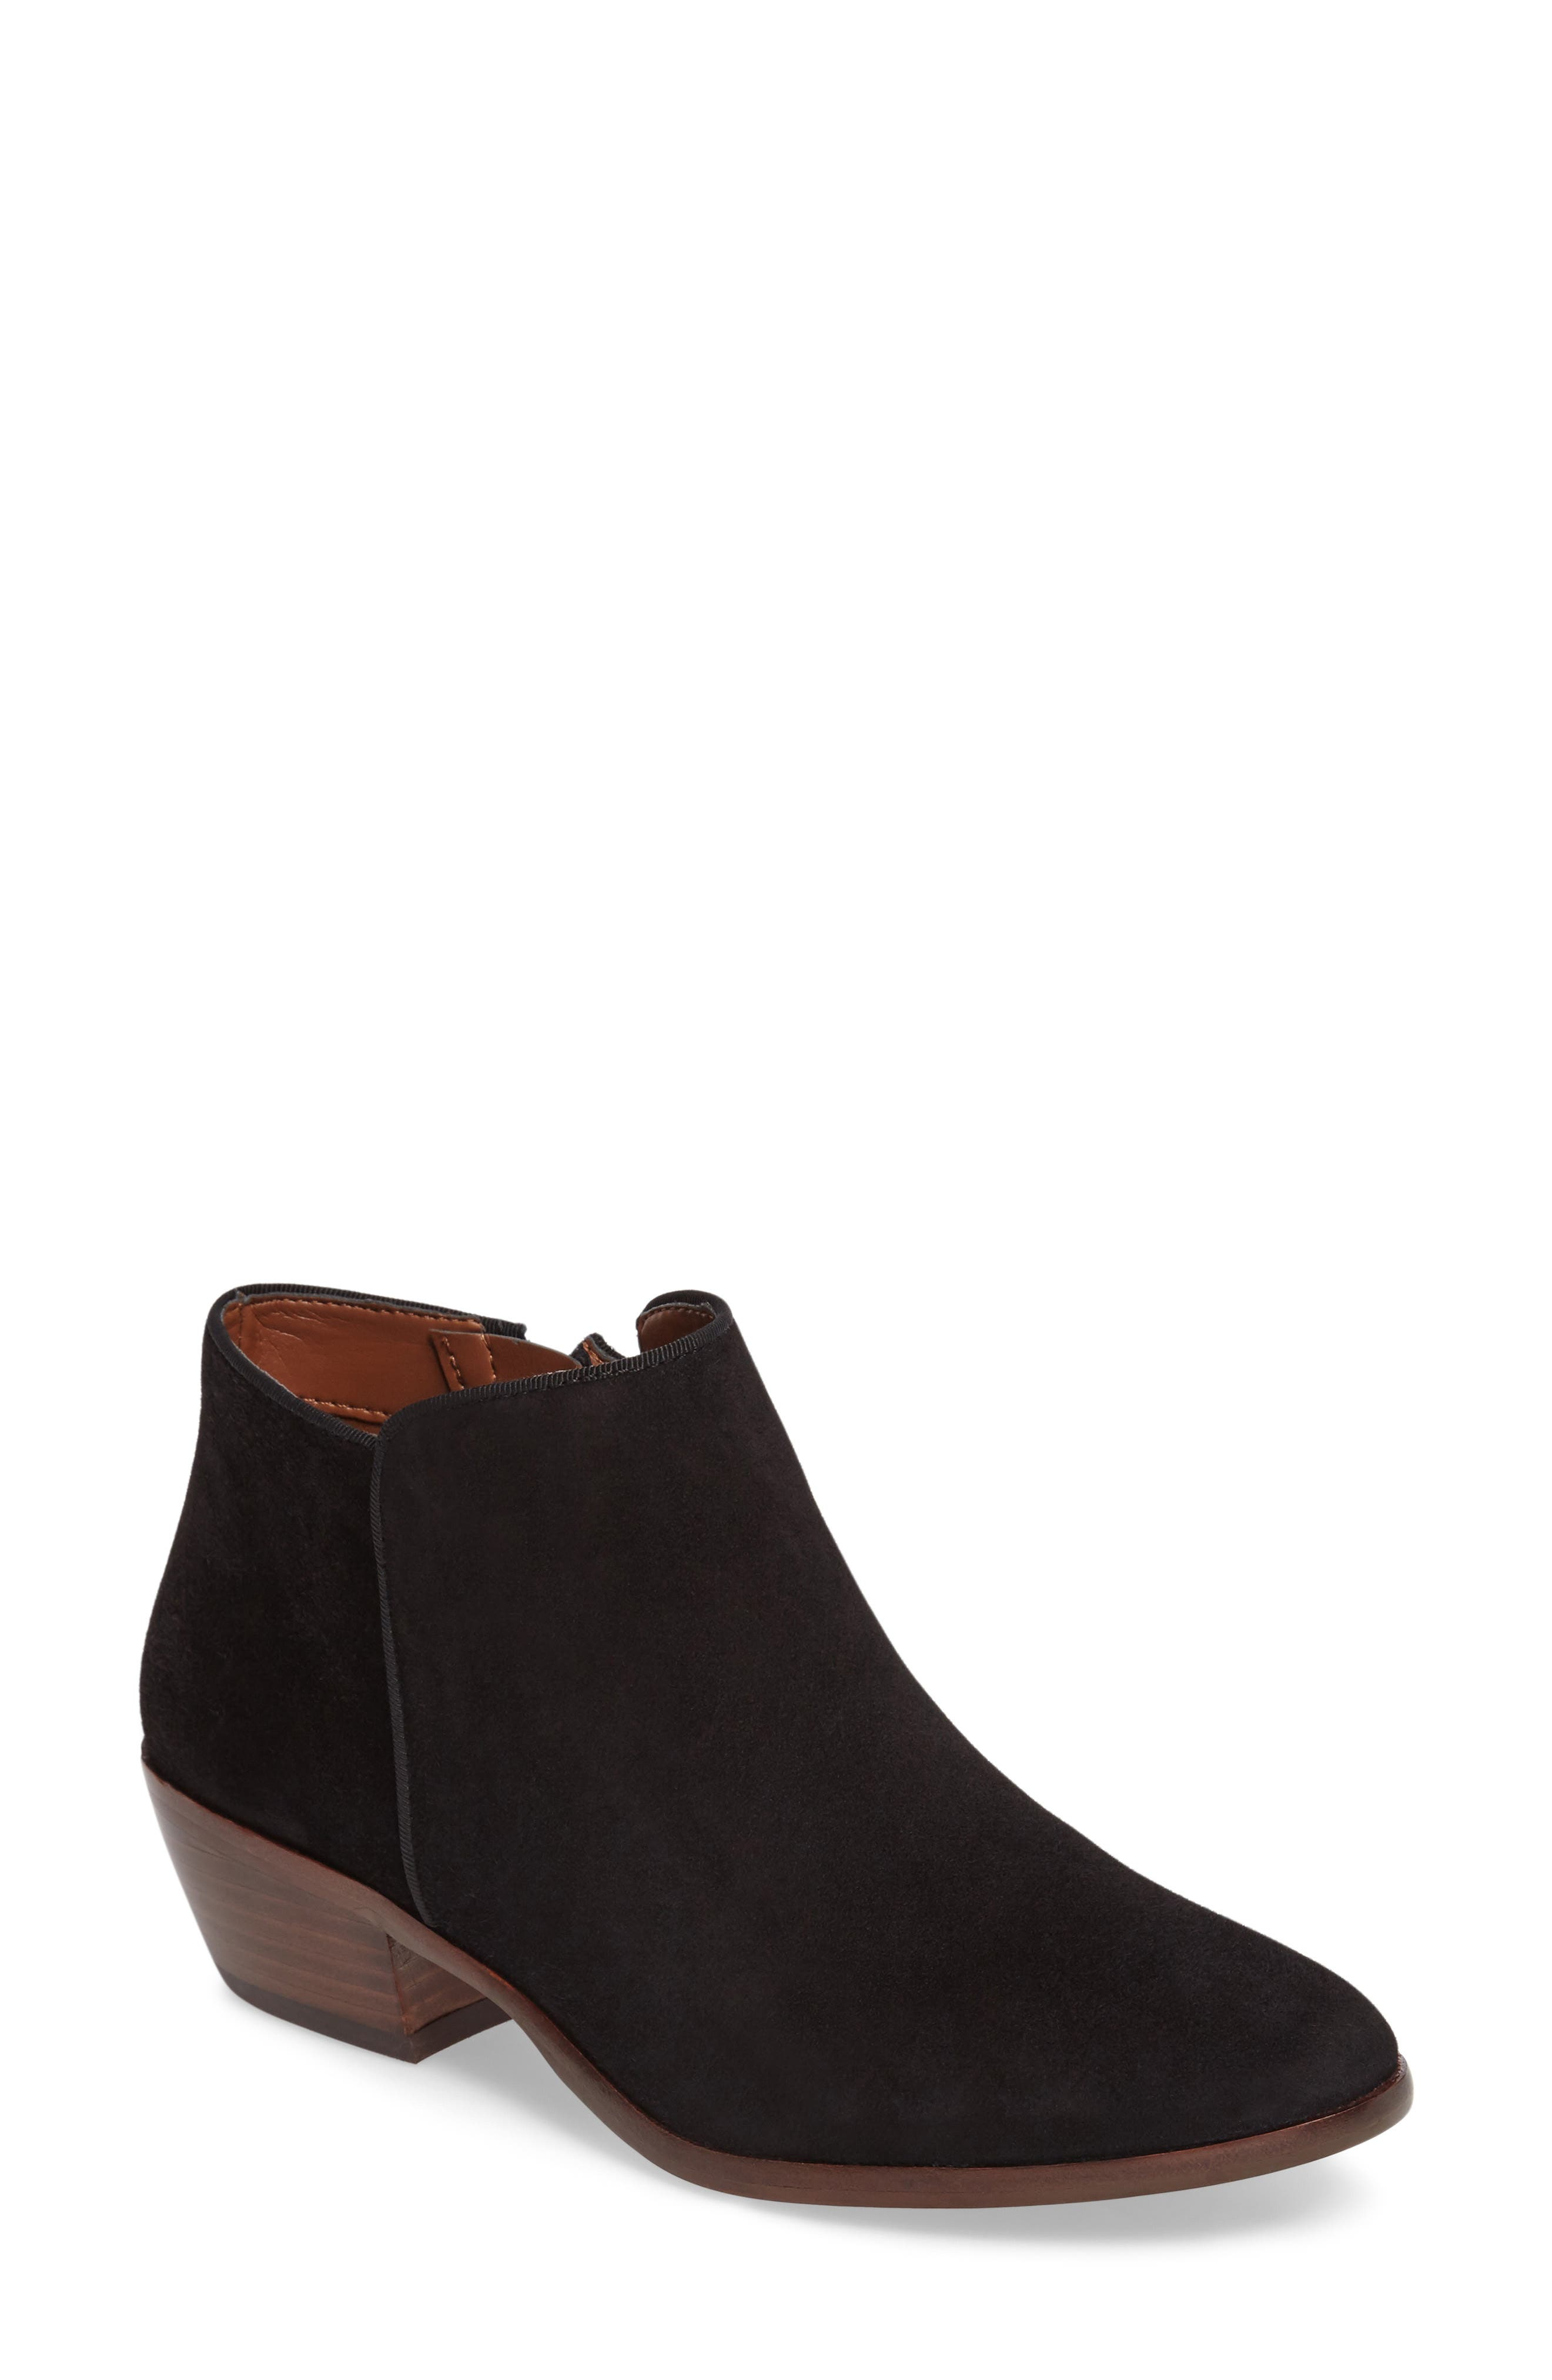 'Petty' Chelsea Boot,                             Alternate thumbnail 2, color,                             BLACK SUEDE